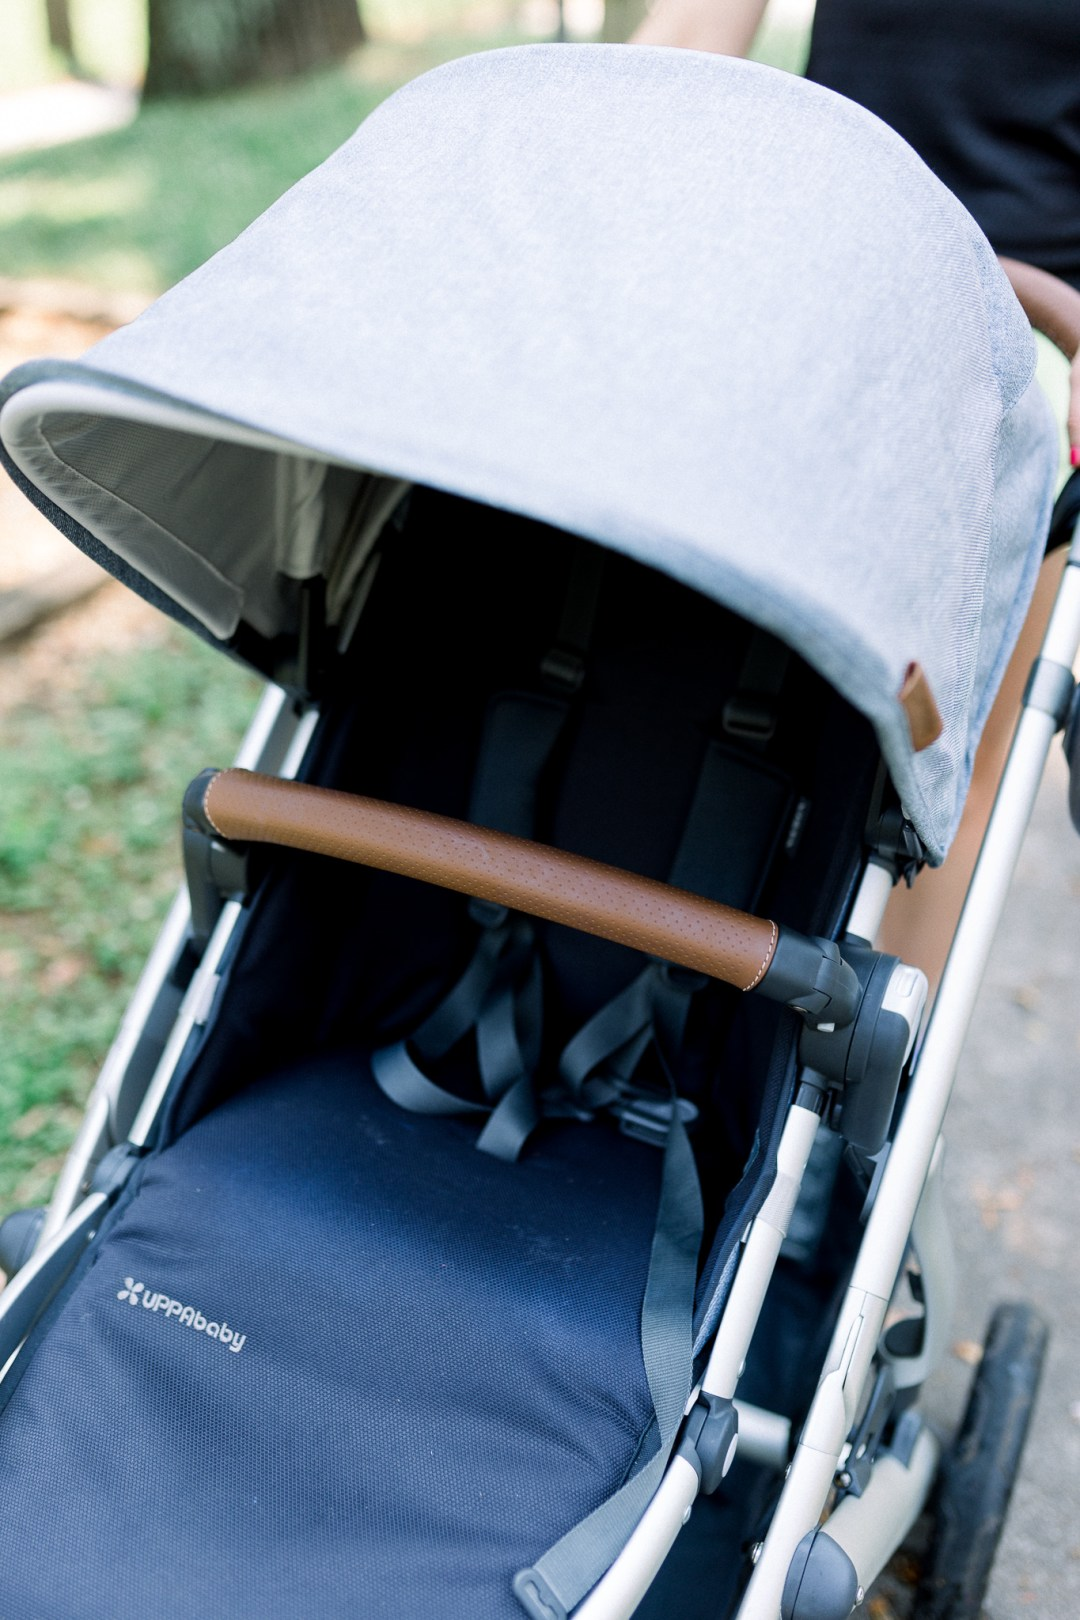 Is the Uppababy Vista Stroller worth it